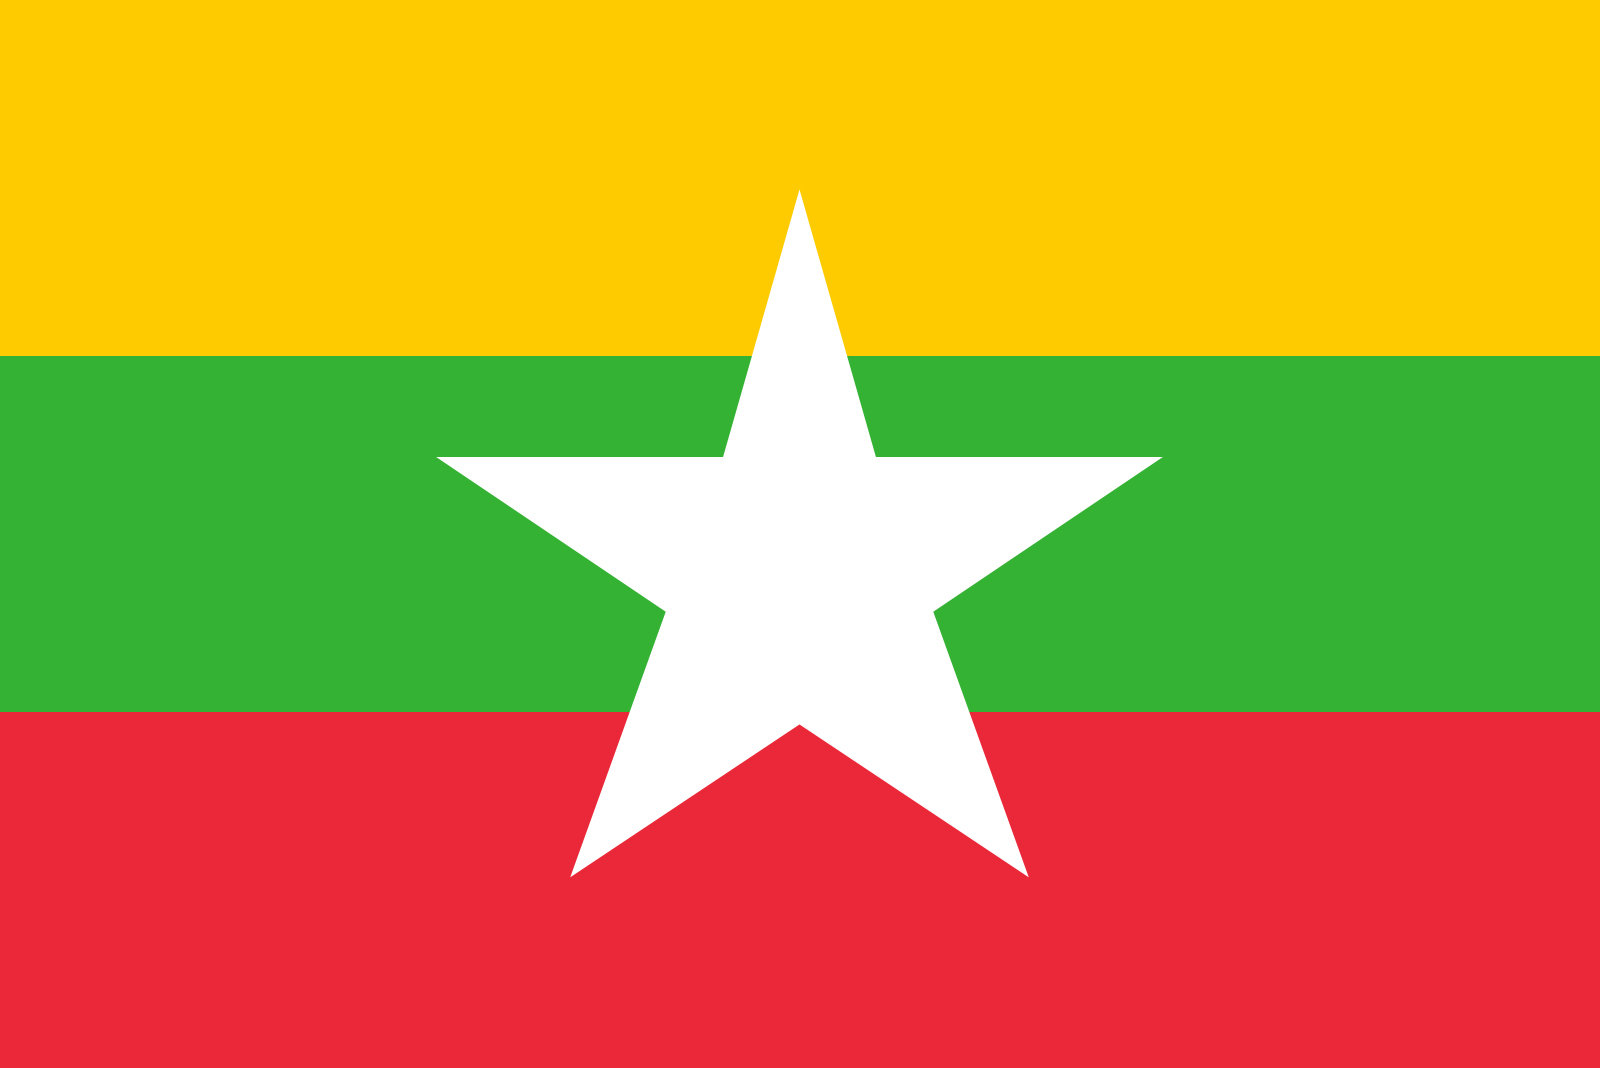 Myanmar flag with horizontal stripes of yellow, green, and red (top to bottom) and a white star in the center